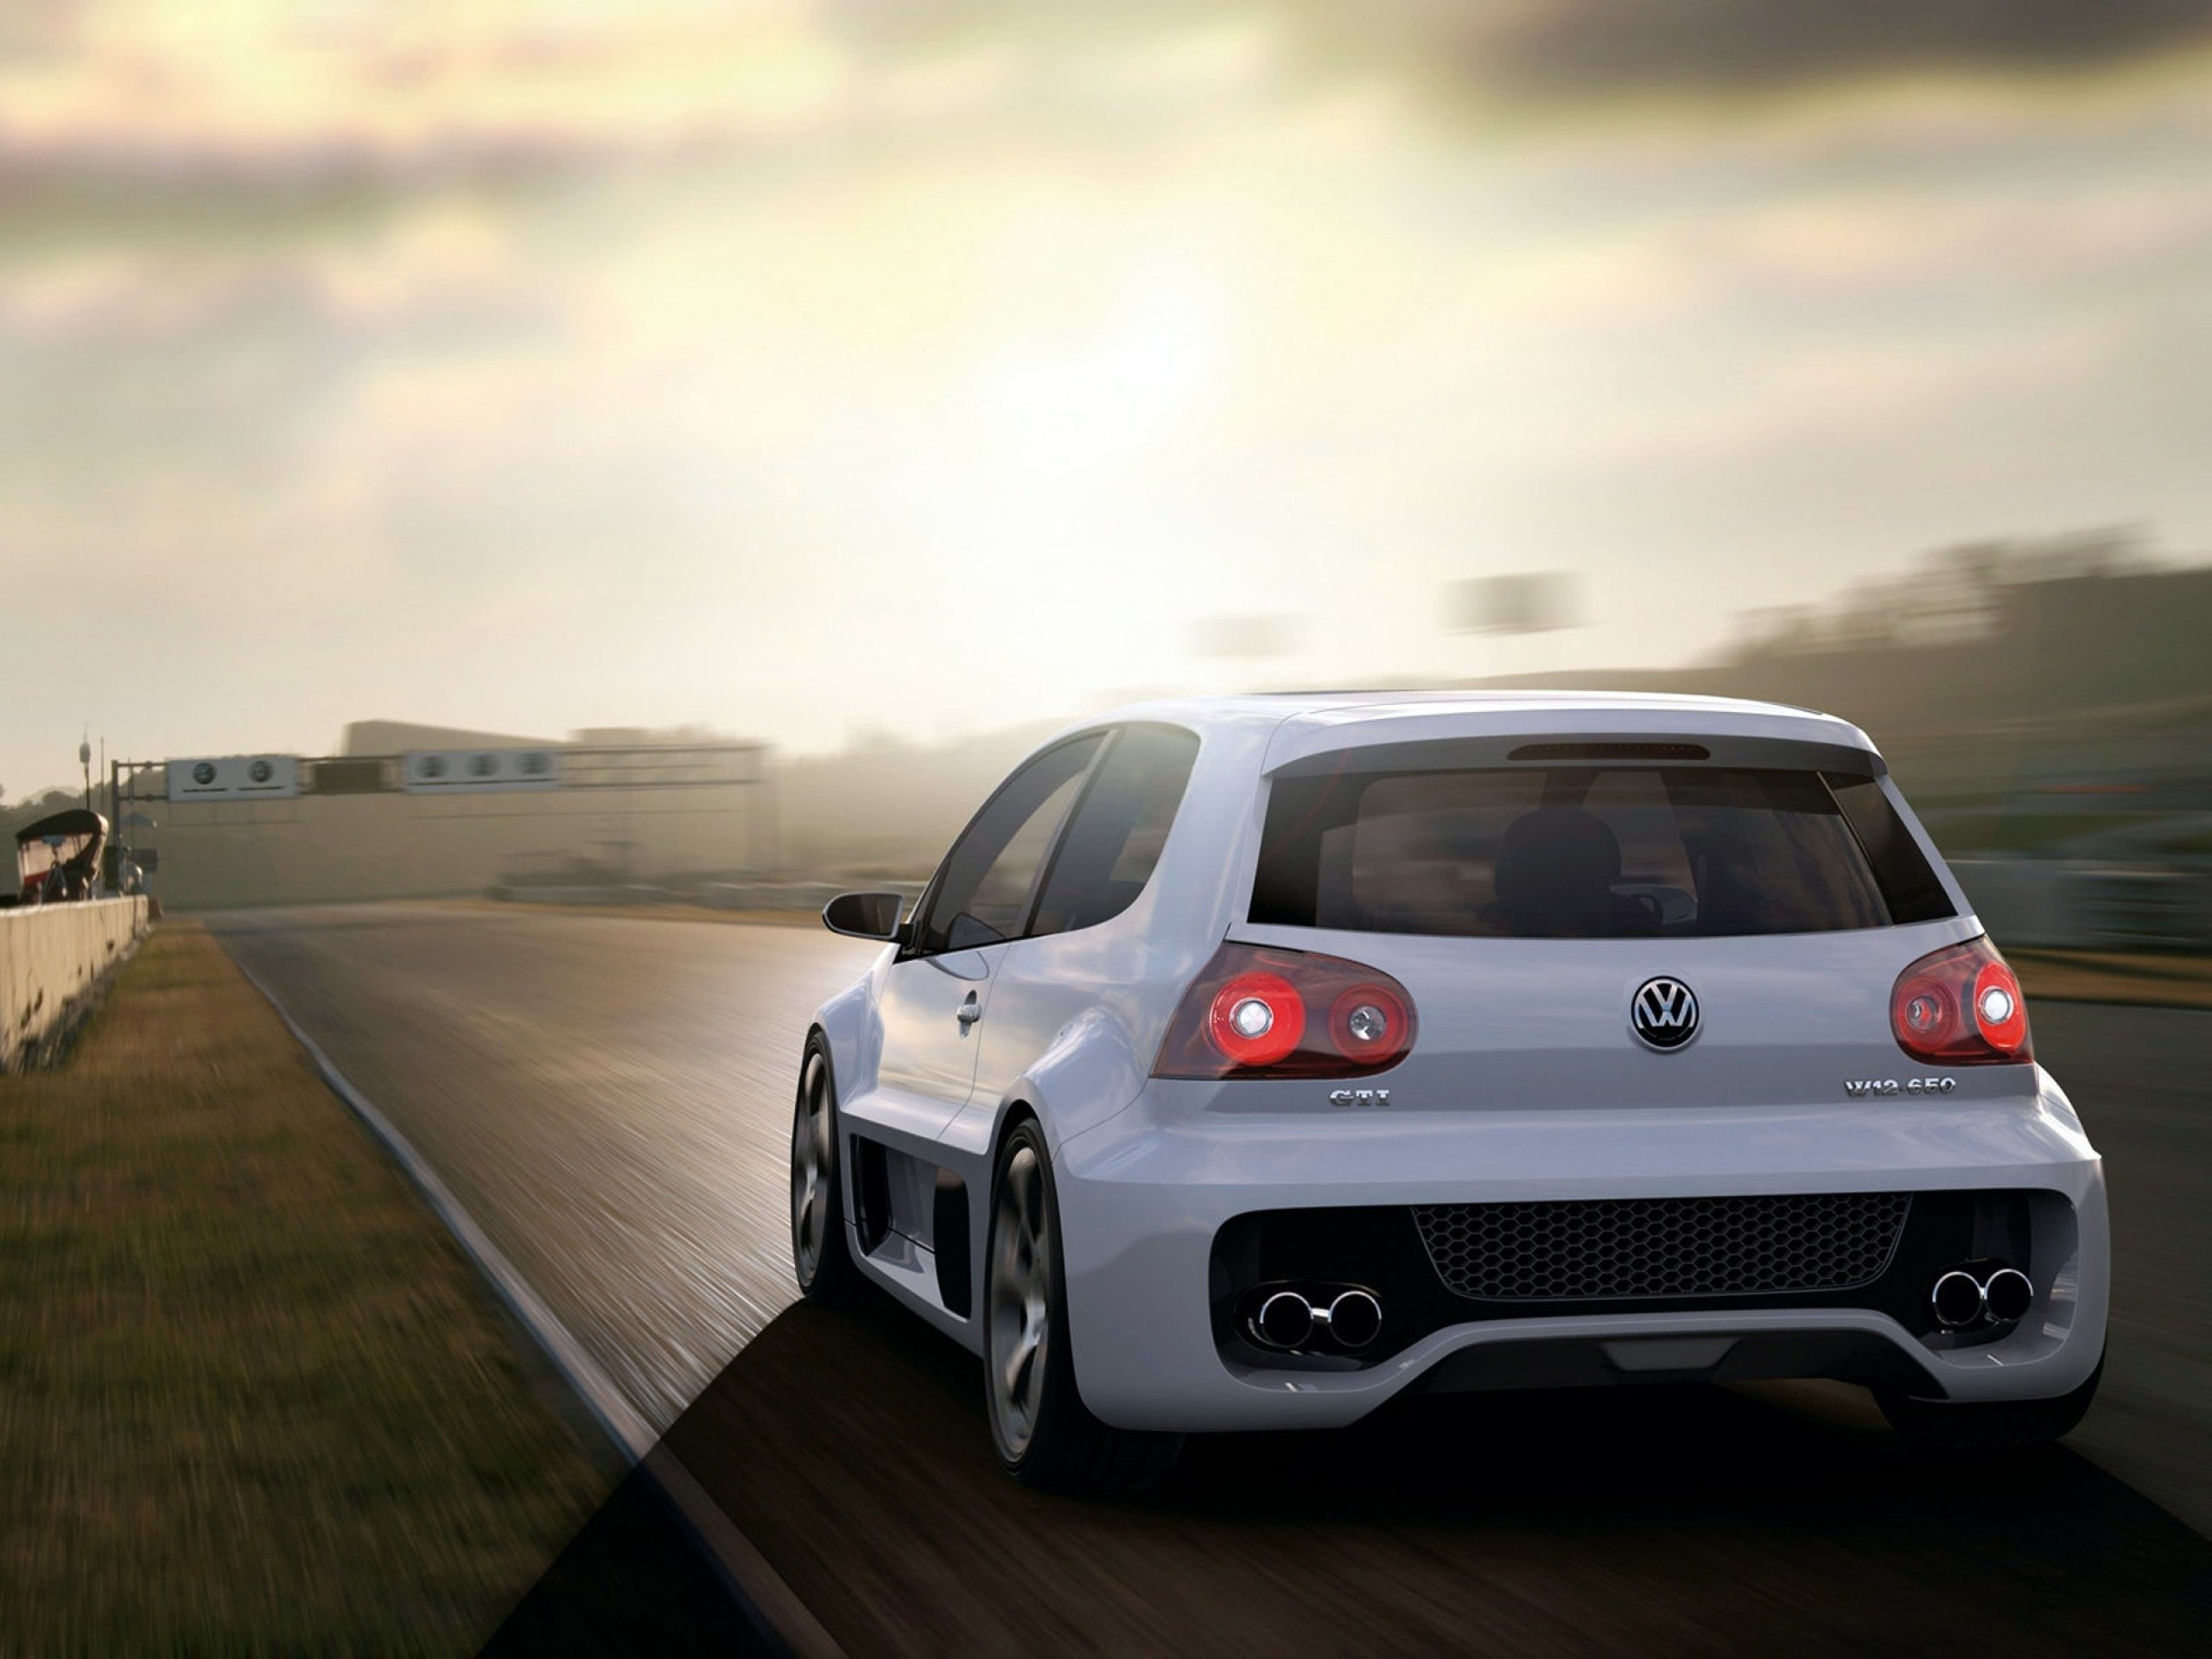 Volkswagen Golf GTI W12-650 Concept HQ wallpapers